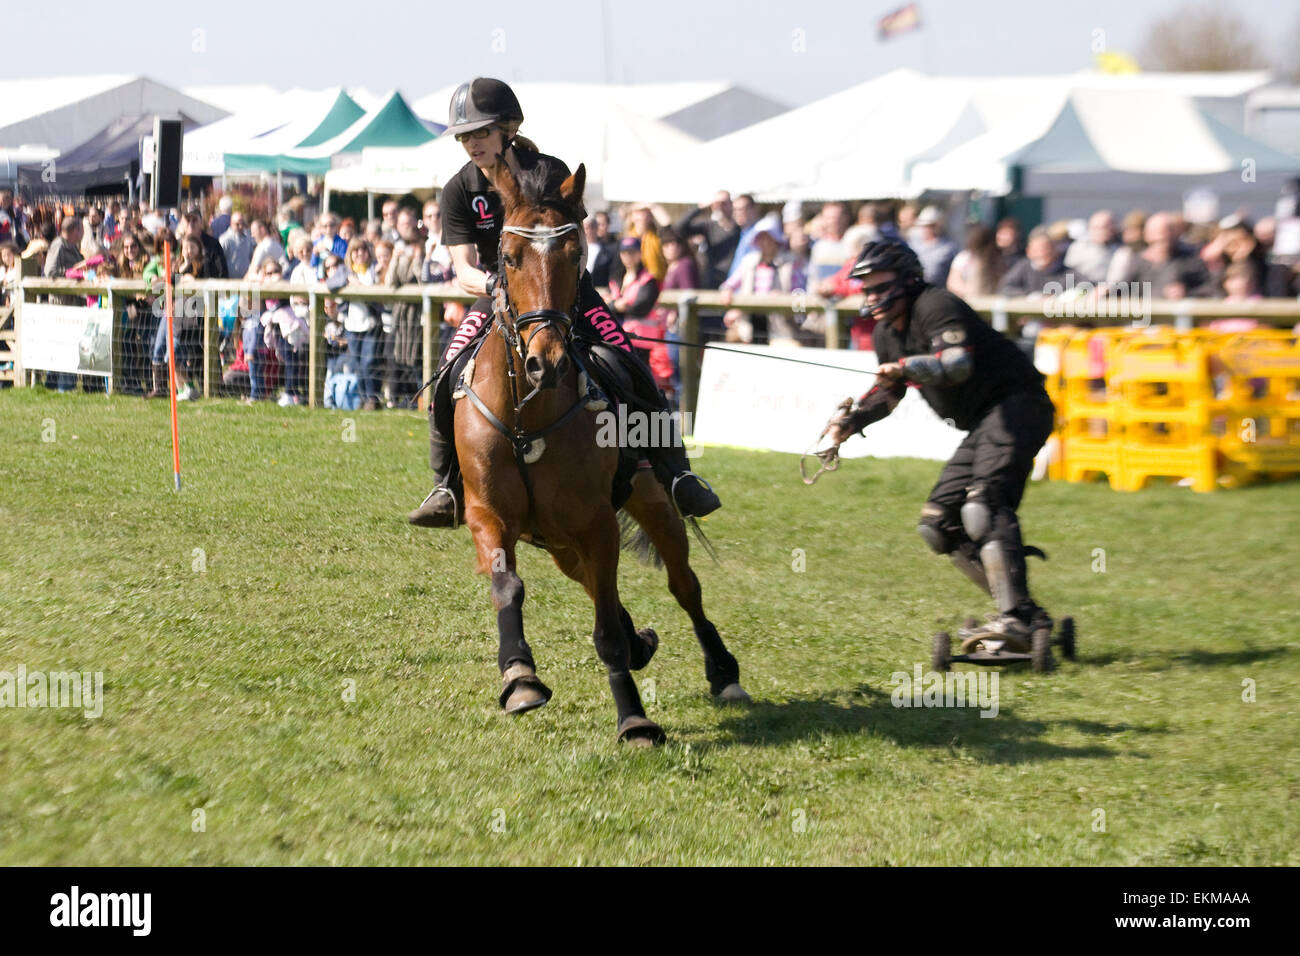 Horse boarding at a show in England - Stock Image